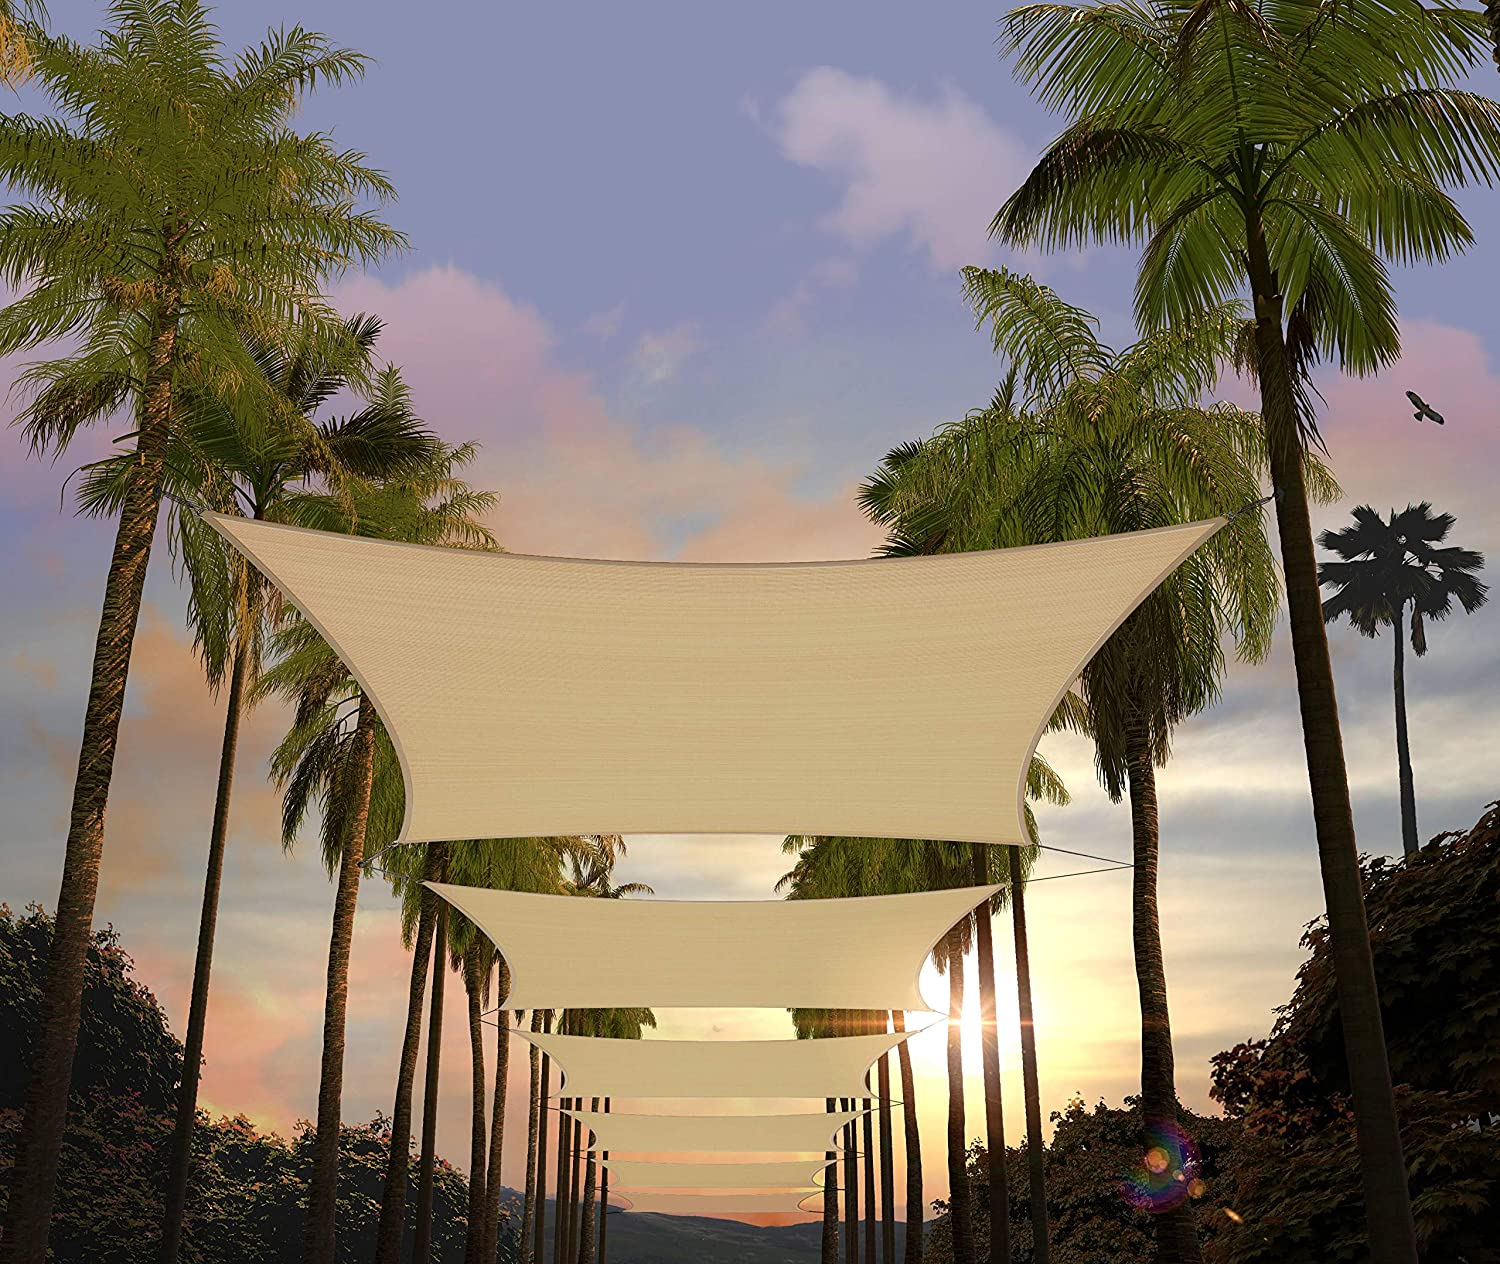 Amgo 8' x 16' Beige Rectangle Sun Shade Sail Canopy Awning ATAPR0816, Water & Air Permeable, 95% UV Blockage, Commercial and Residential (We Customize)